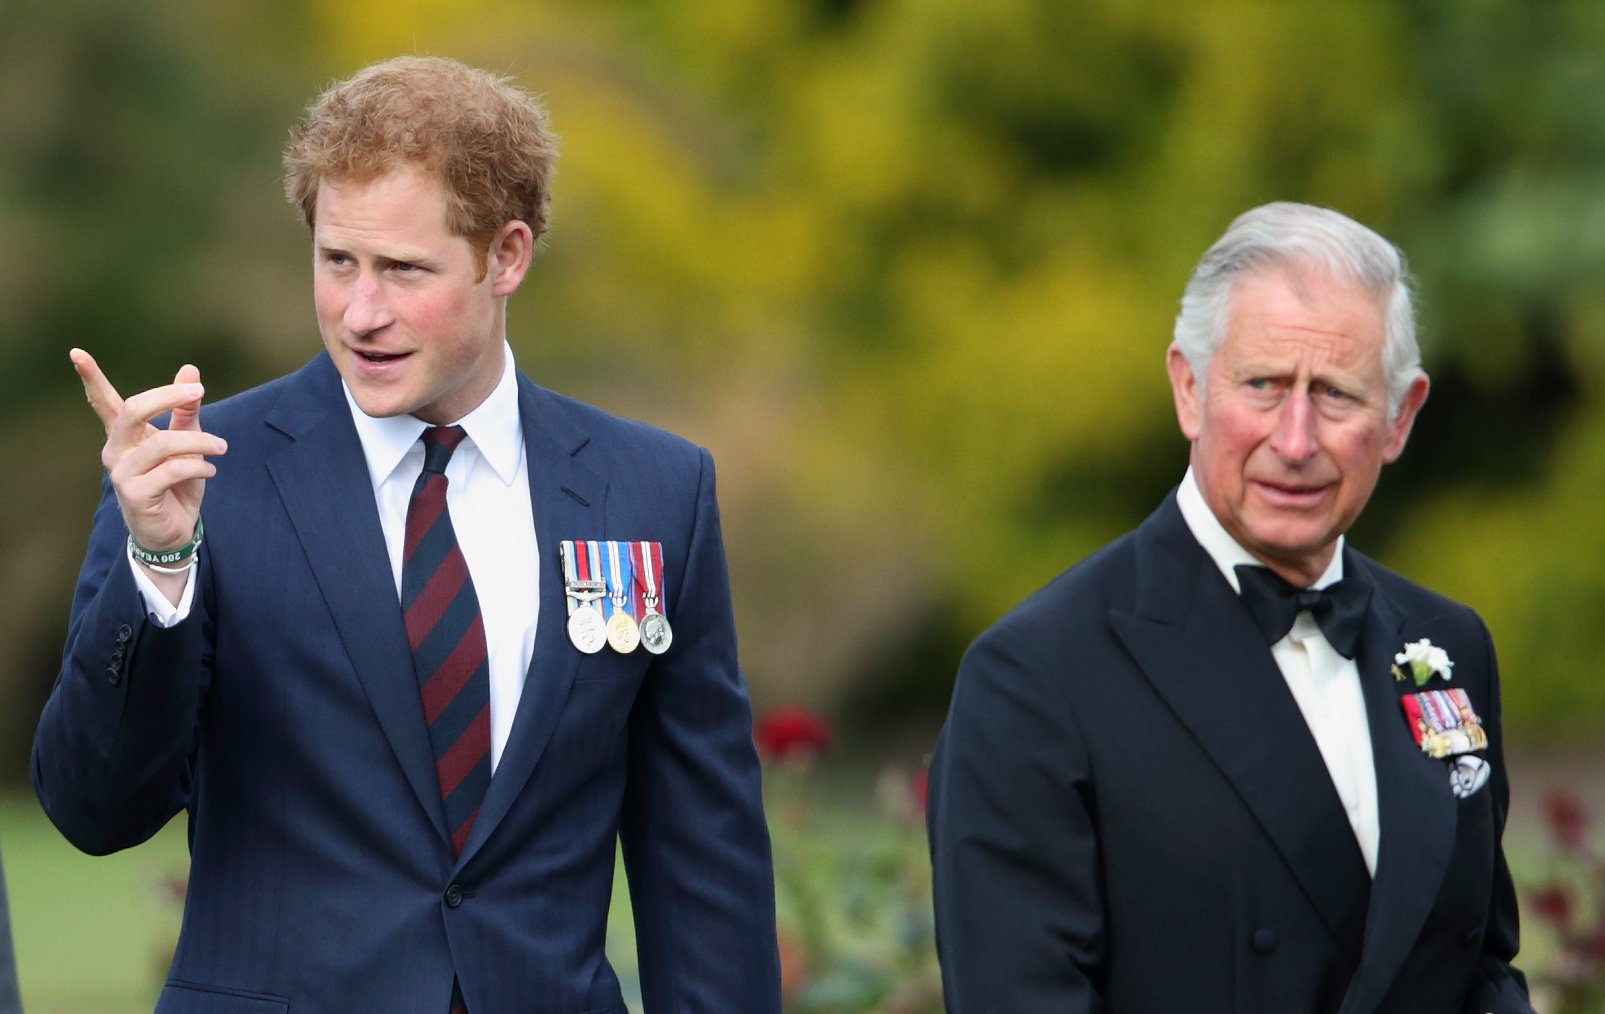 Image Credits: Getty Images / Max Mumby / Indigo | Prince Harry and Prince Charles, Prince of Wales attend the Gurkha 200 Pageant at the Royal Hospital Chelsea on June 9, 2015 in London, England.